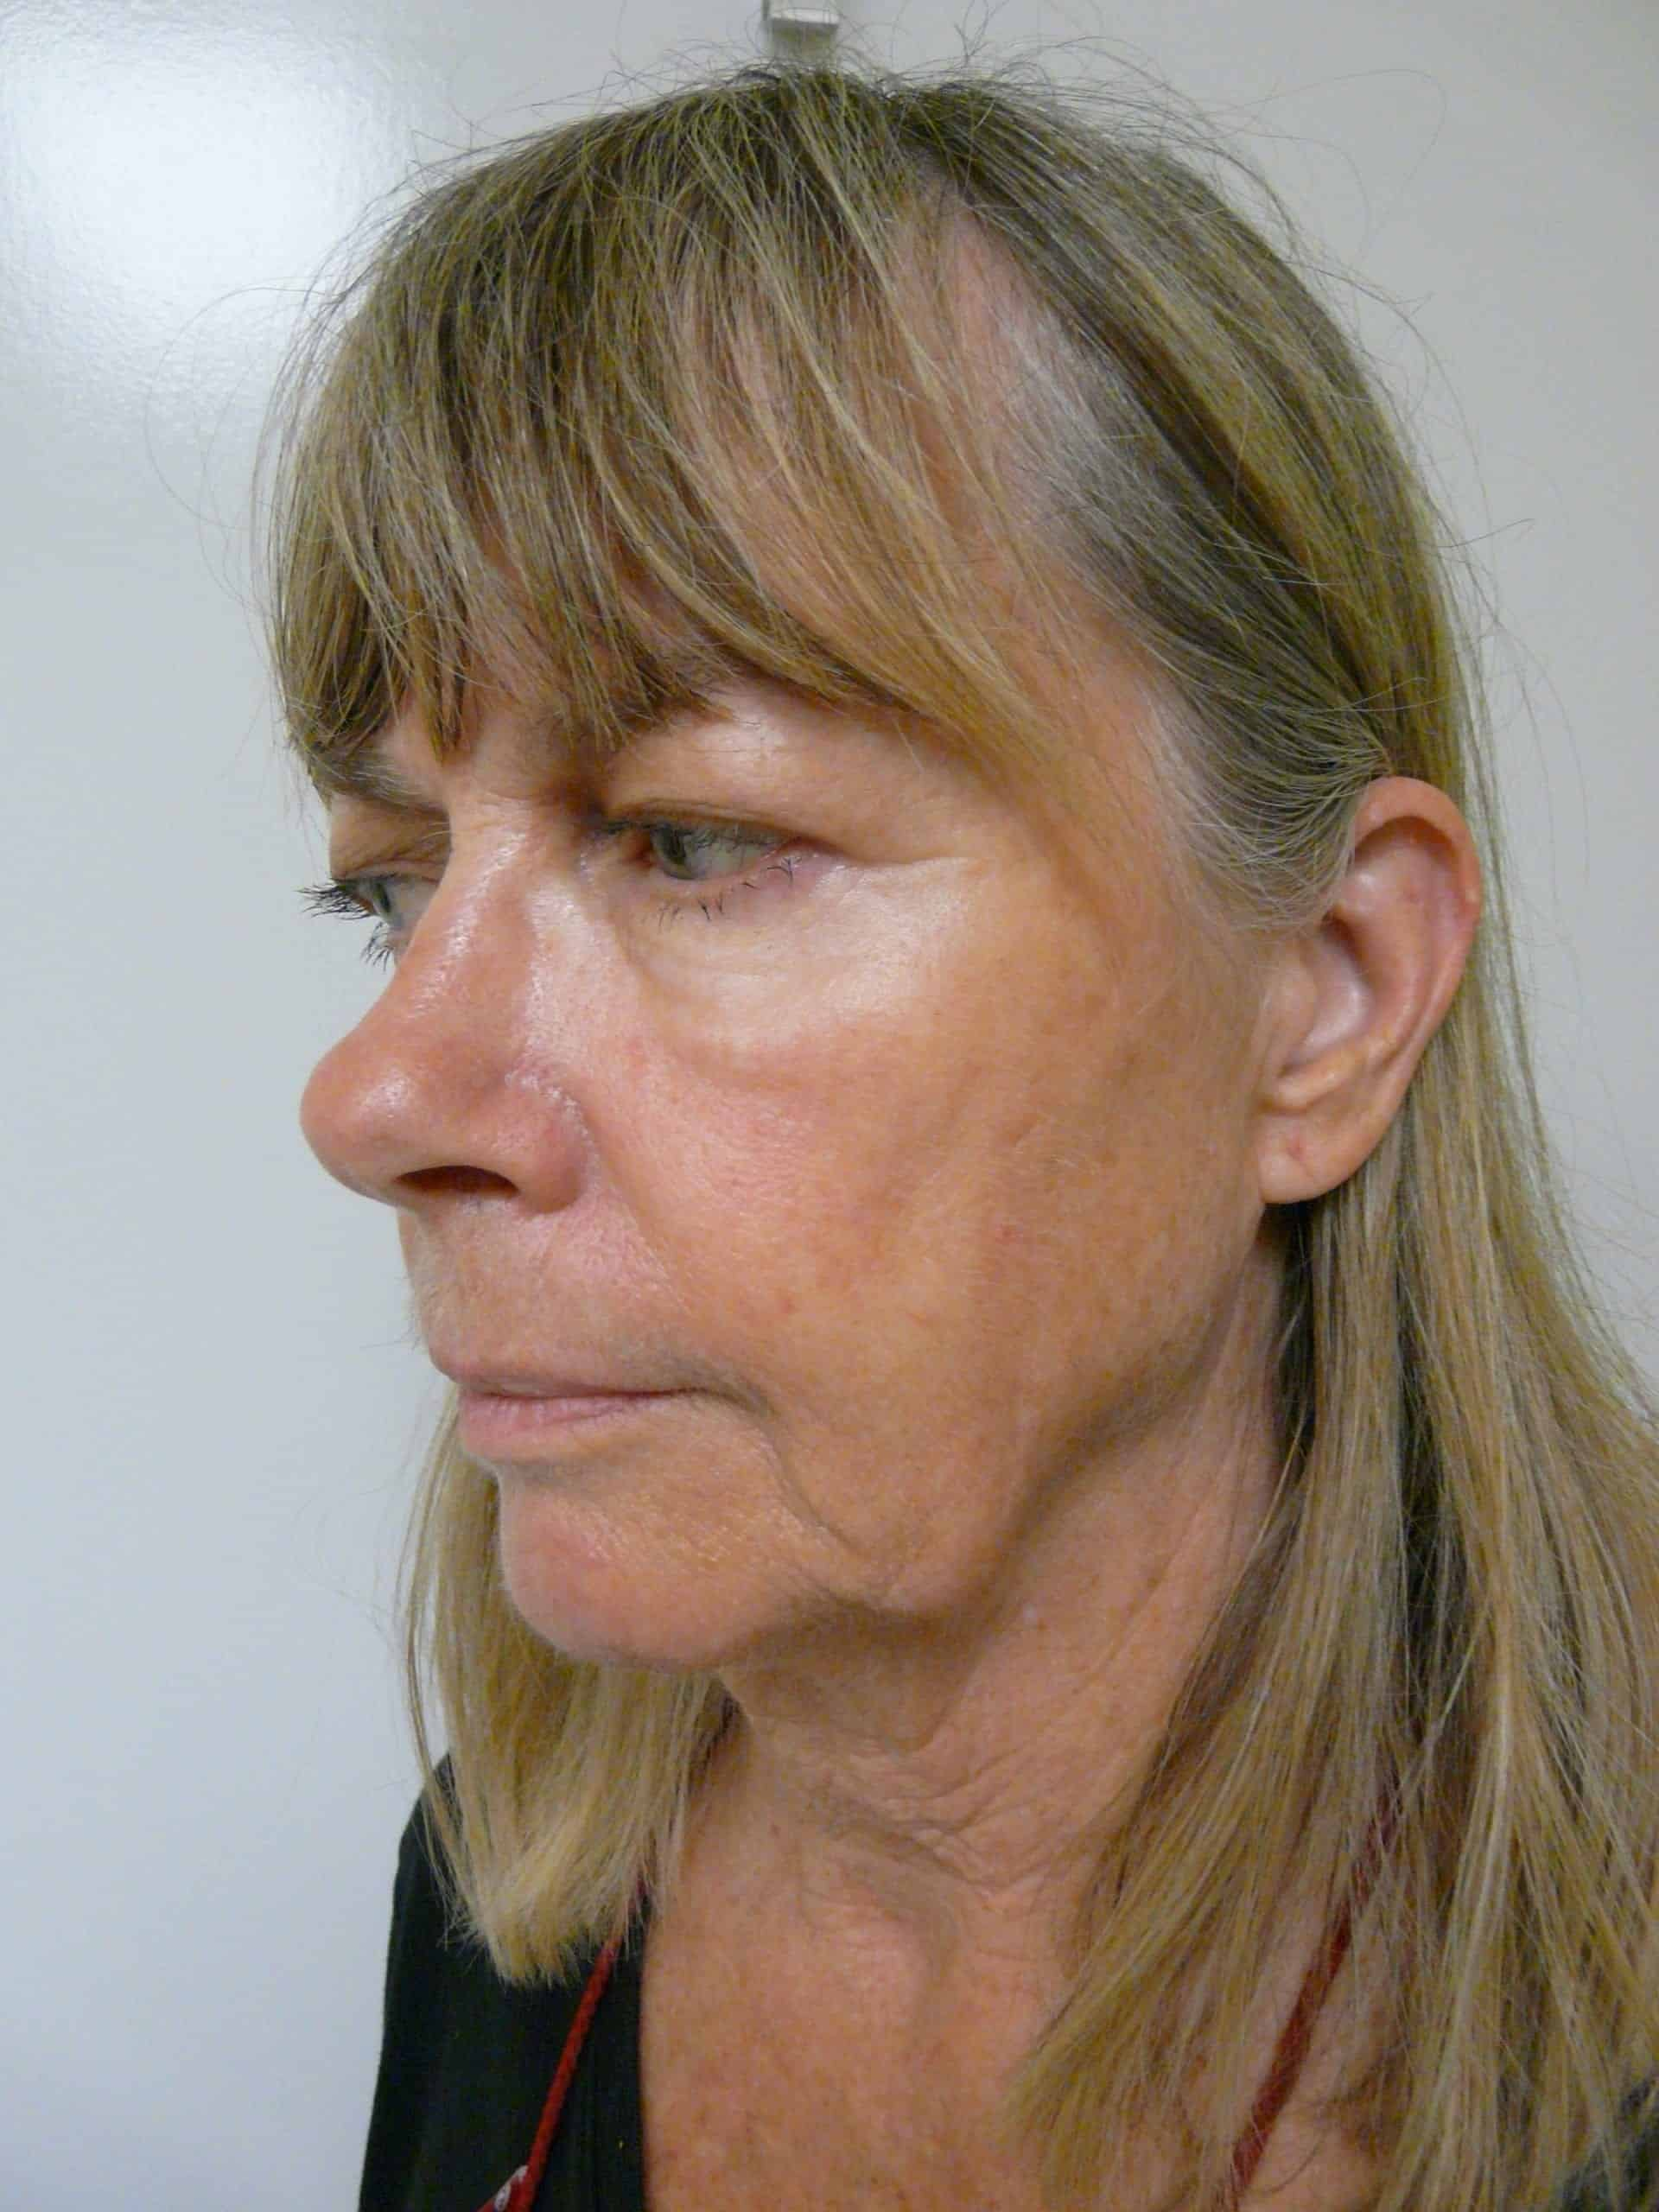 How do I get rid of my jowls?